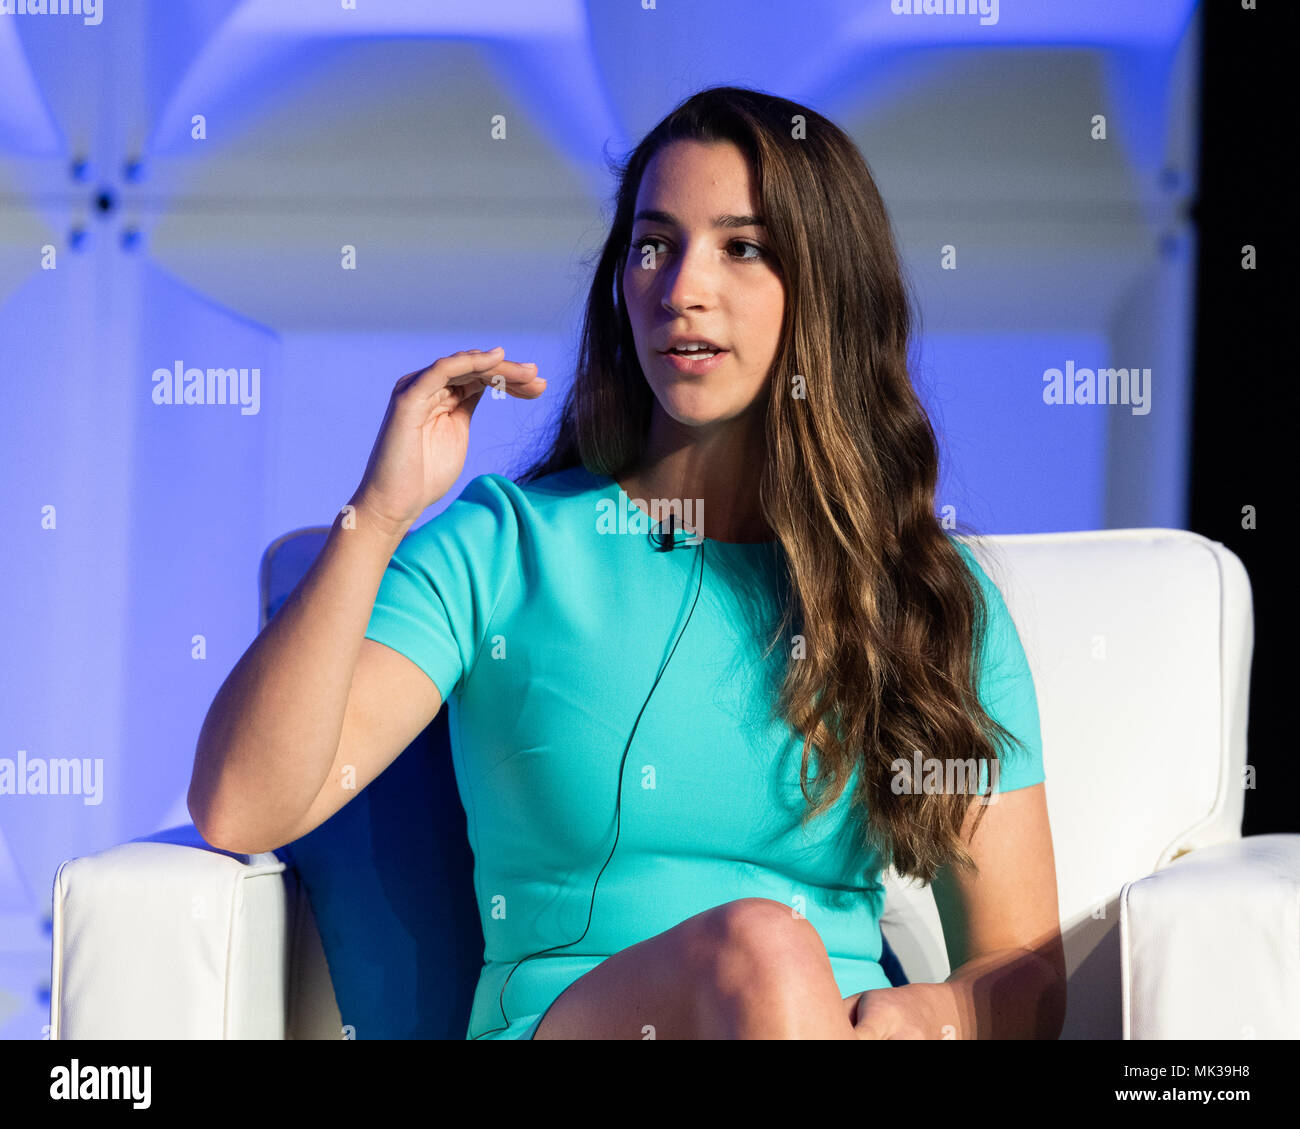 Aly Stock Photos & Aly Stock Images - Page 2 - Alamy